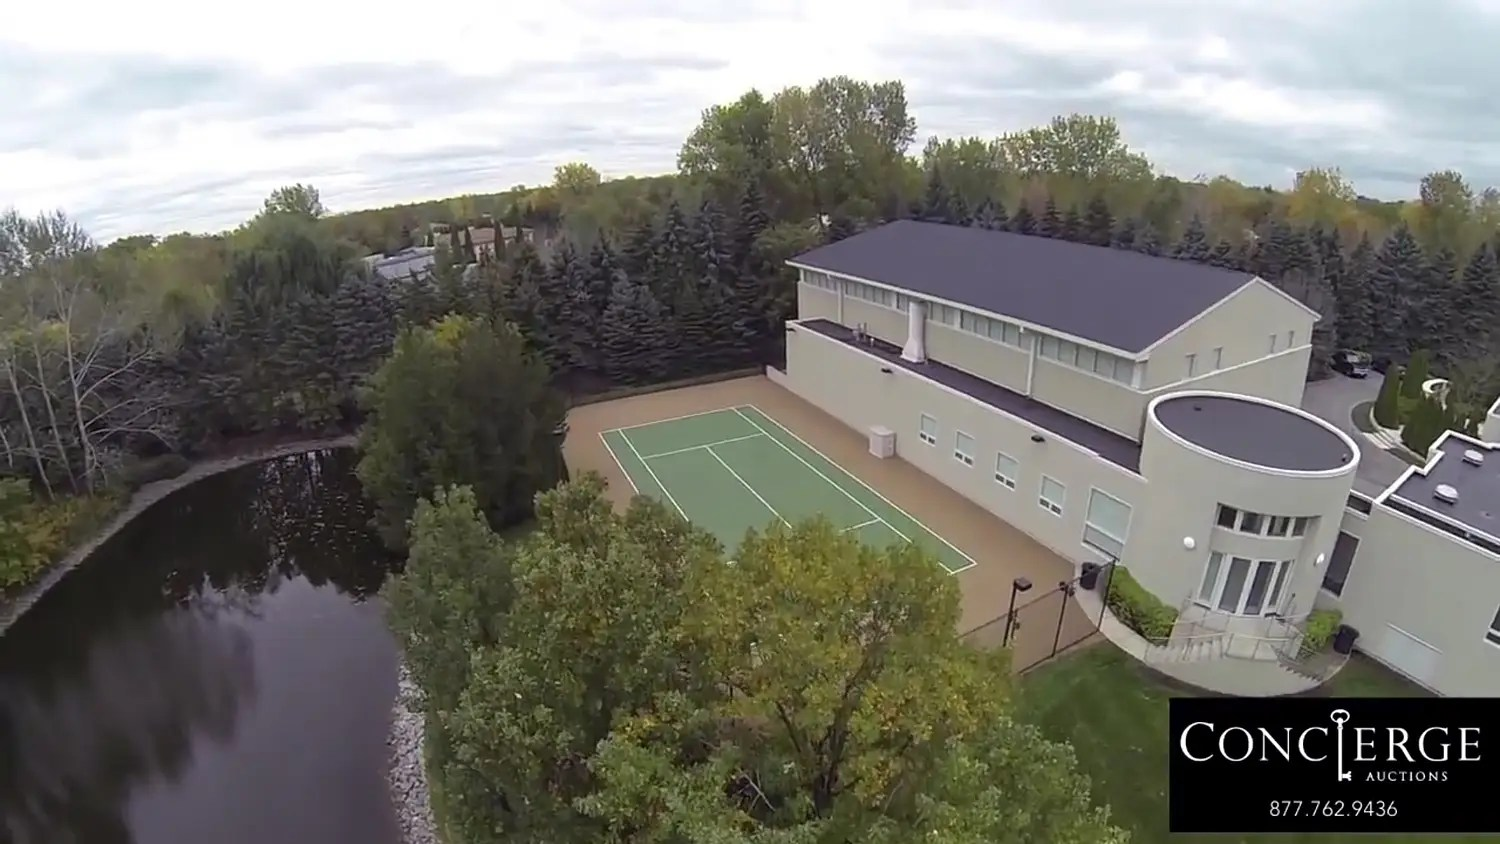 The outdoor space is spectacular. There's a tennis court.